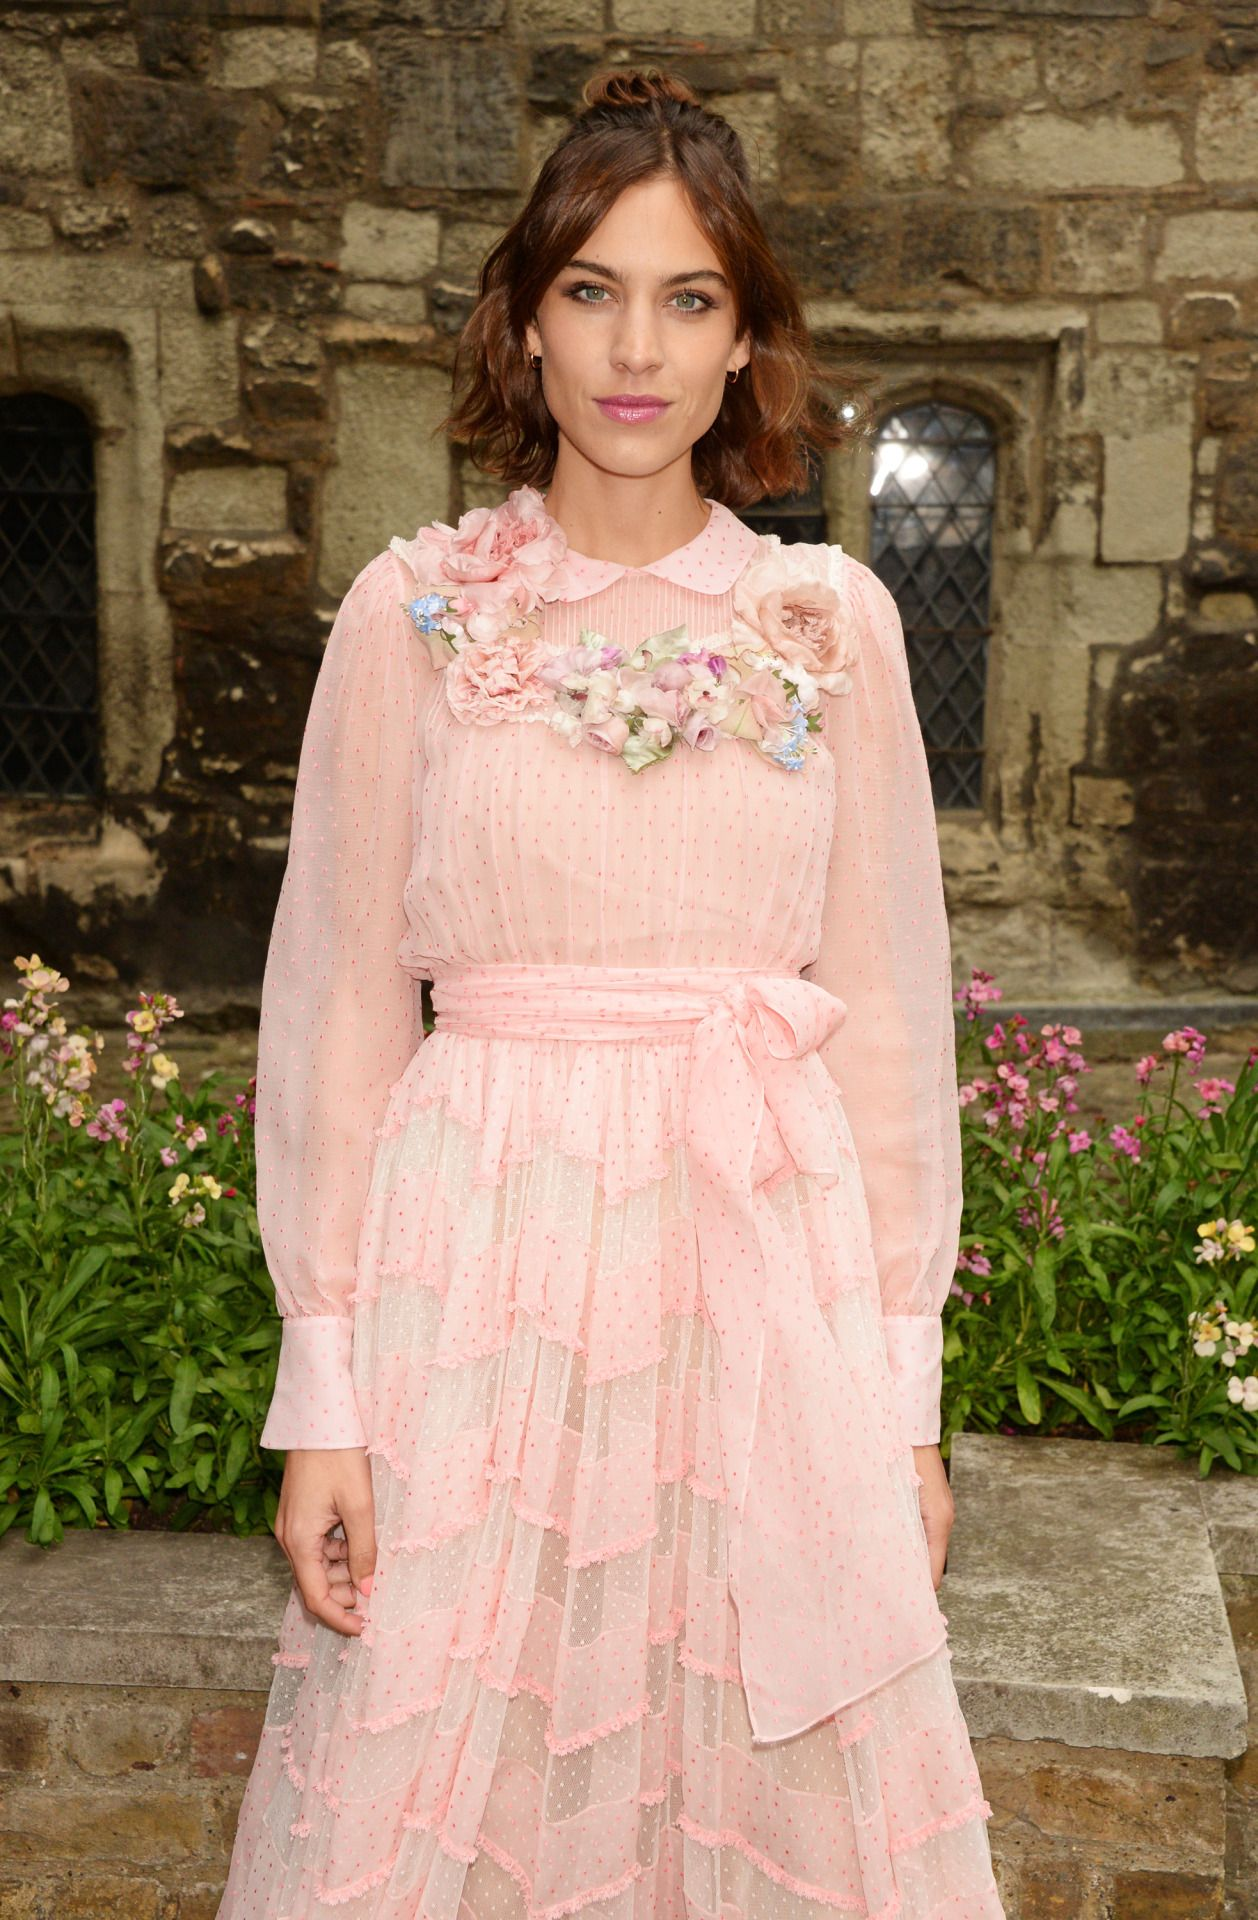 Alexa Chung attends the Gucci Cruise 2017 fashion show at the ...